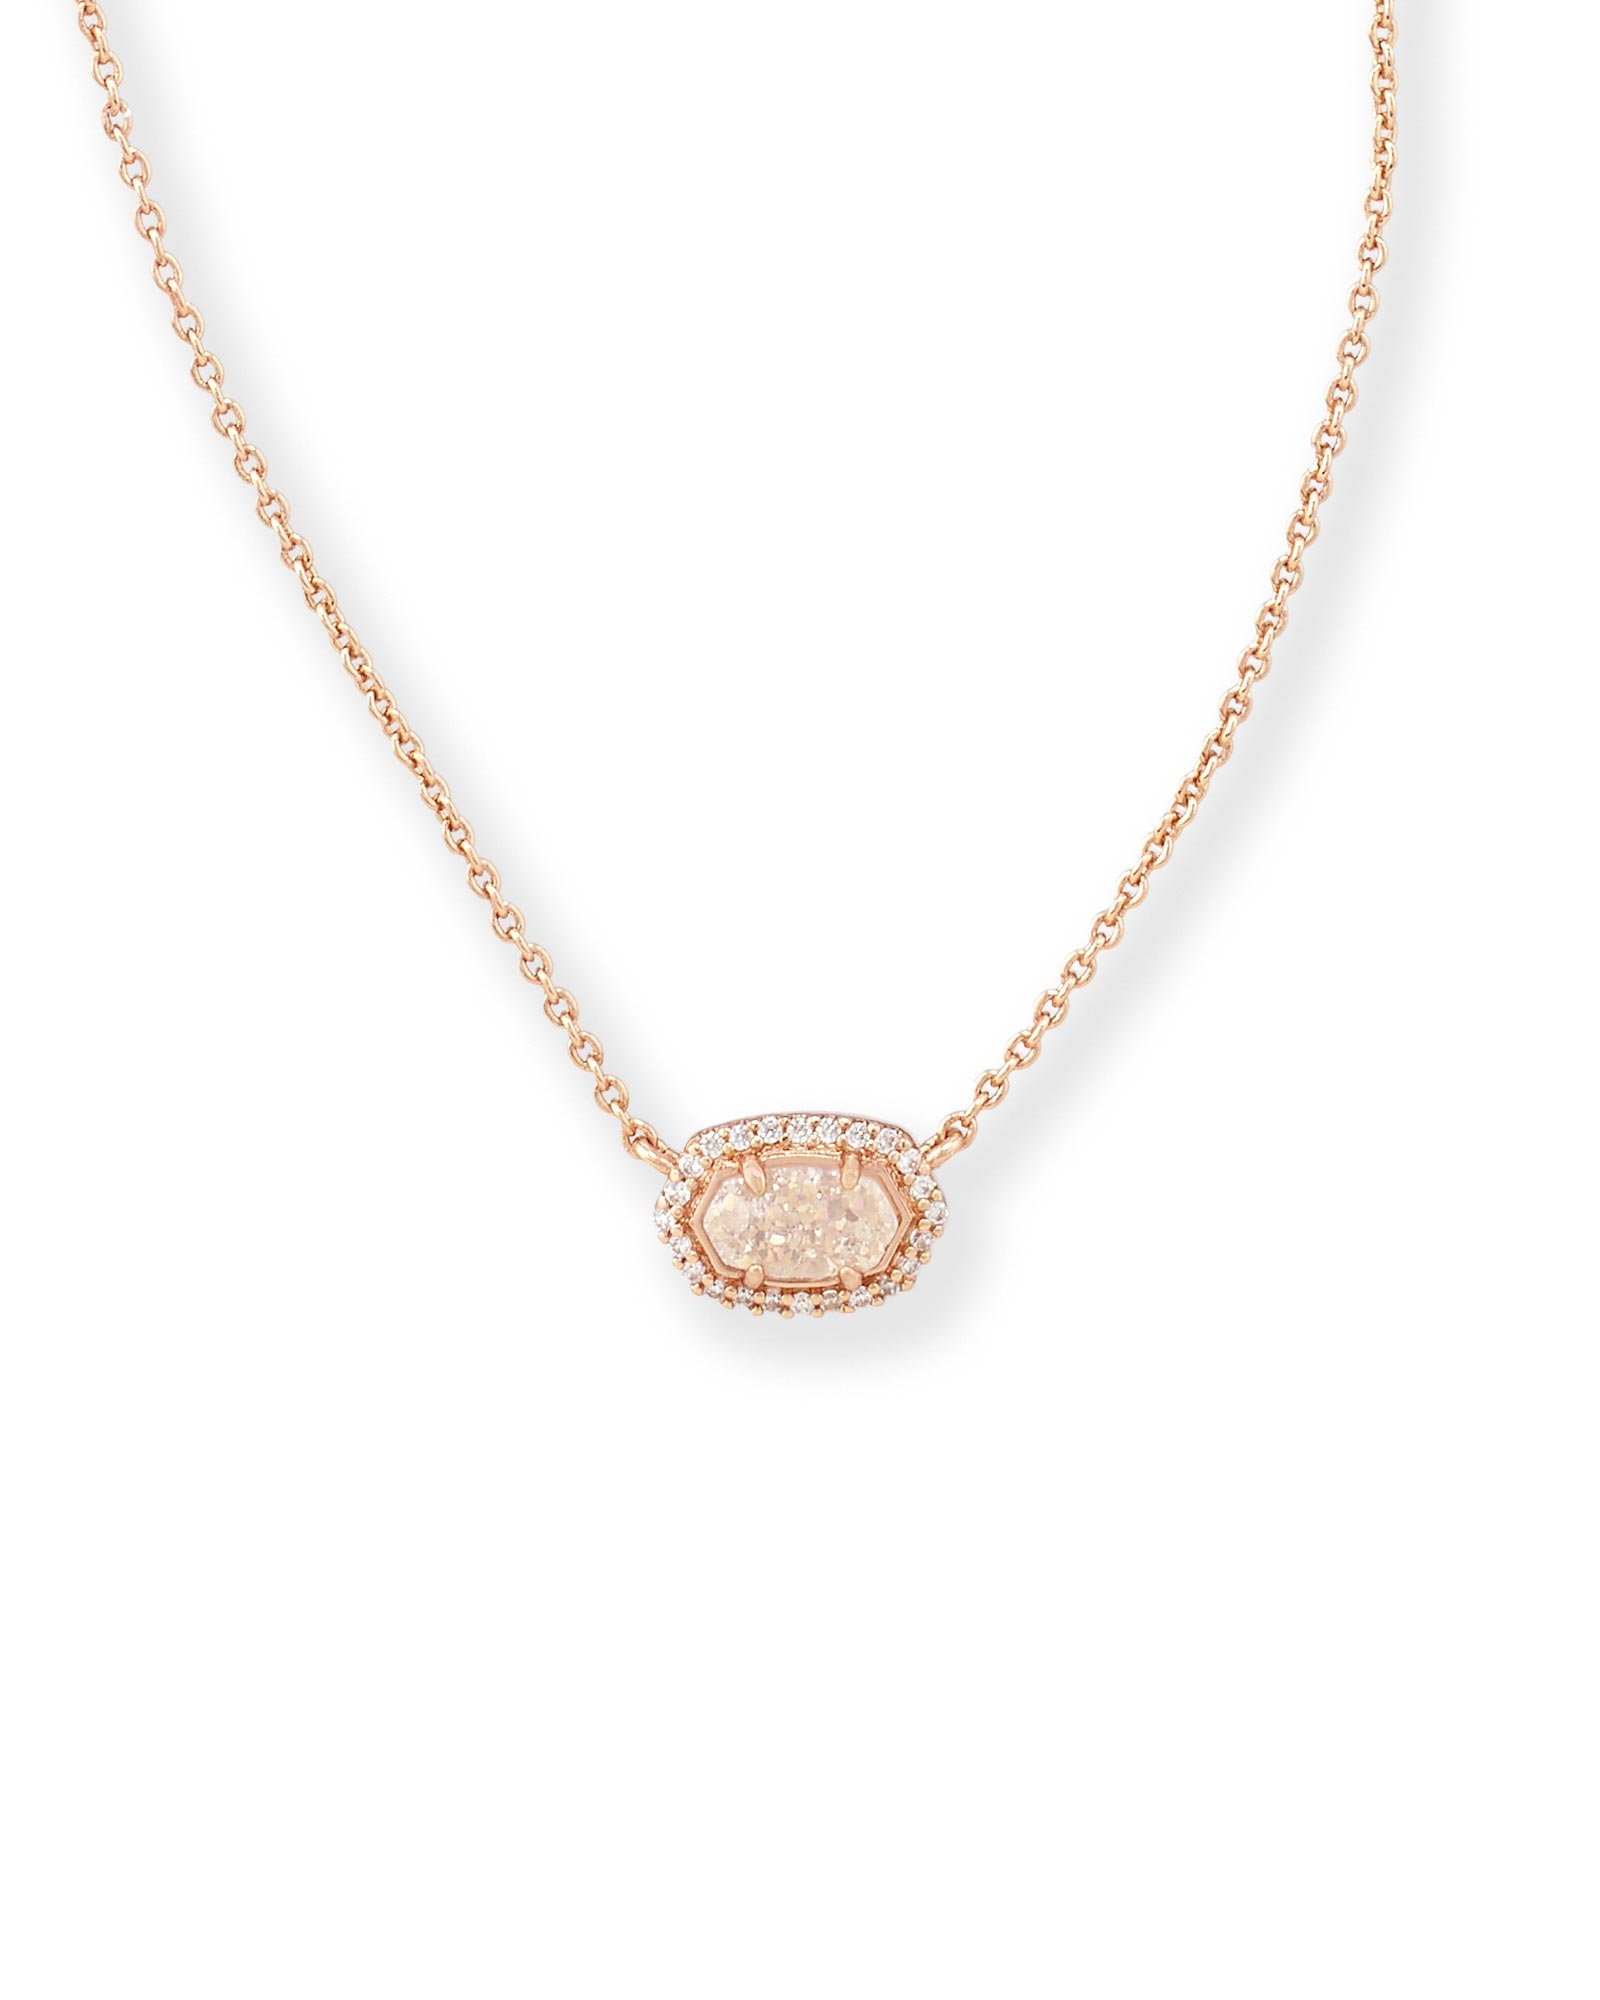 Chelsea Rose Gold Pendant Necklace in Iridescent Drusy Kendra Scott